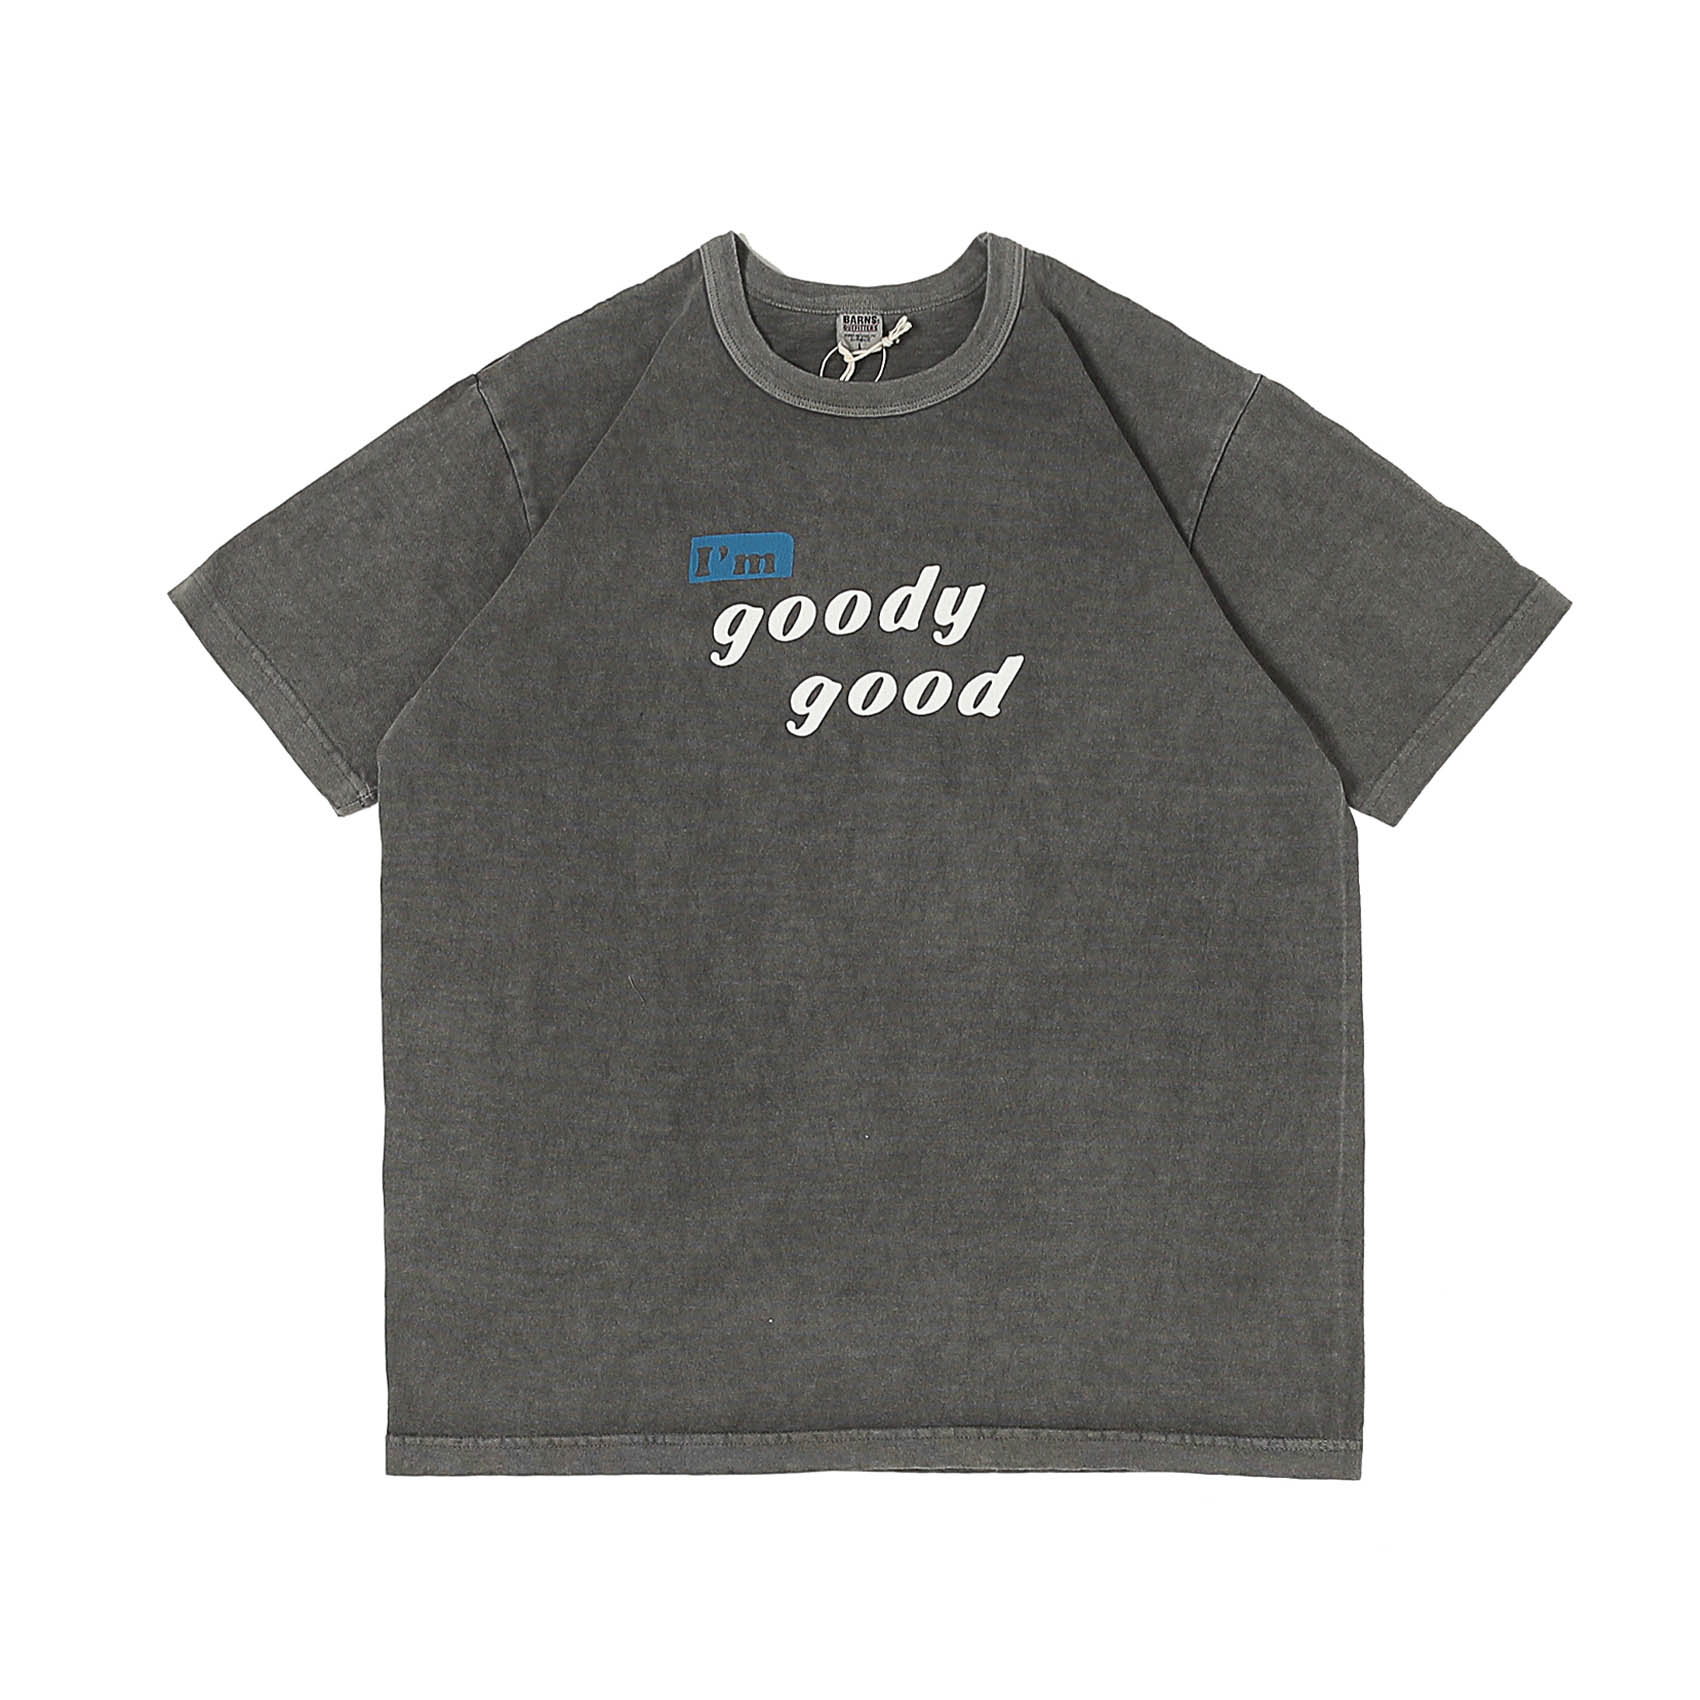 S/S PRINTED TEE - GOODY GOOD CHARCOAL